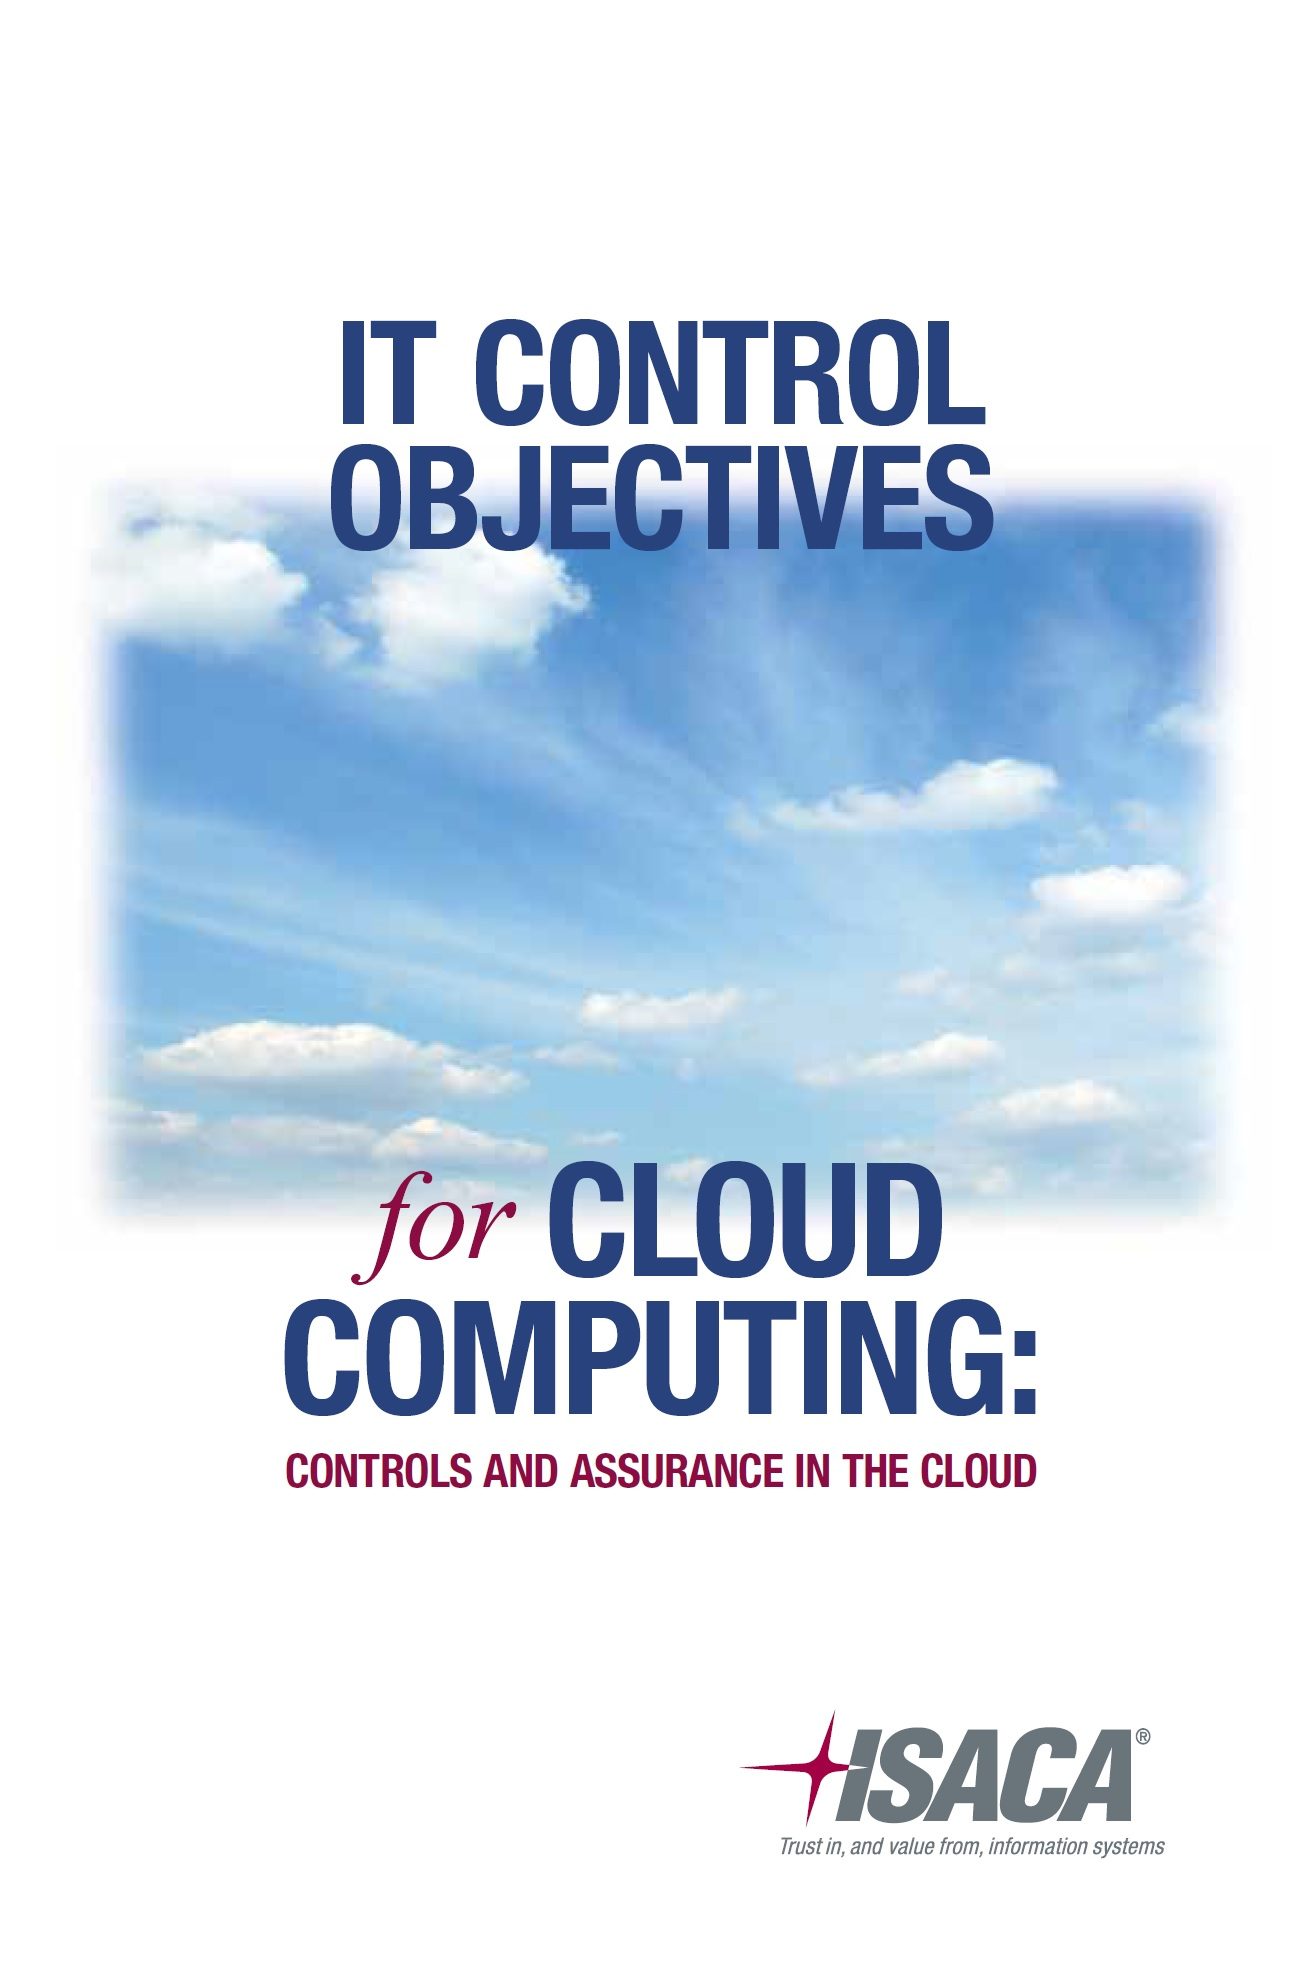 IT Control Objectives for Cloud Computing – ISACA, 2011